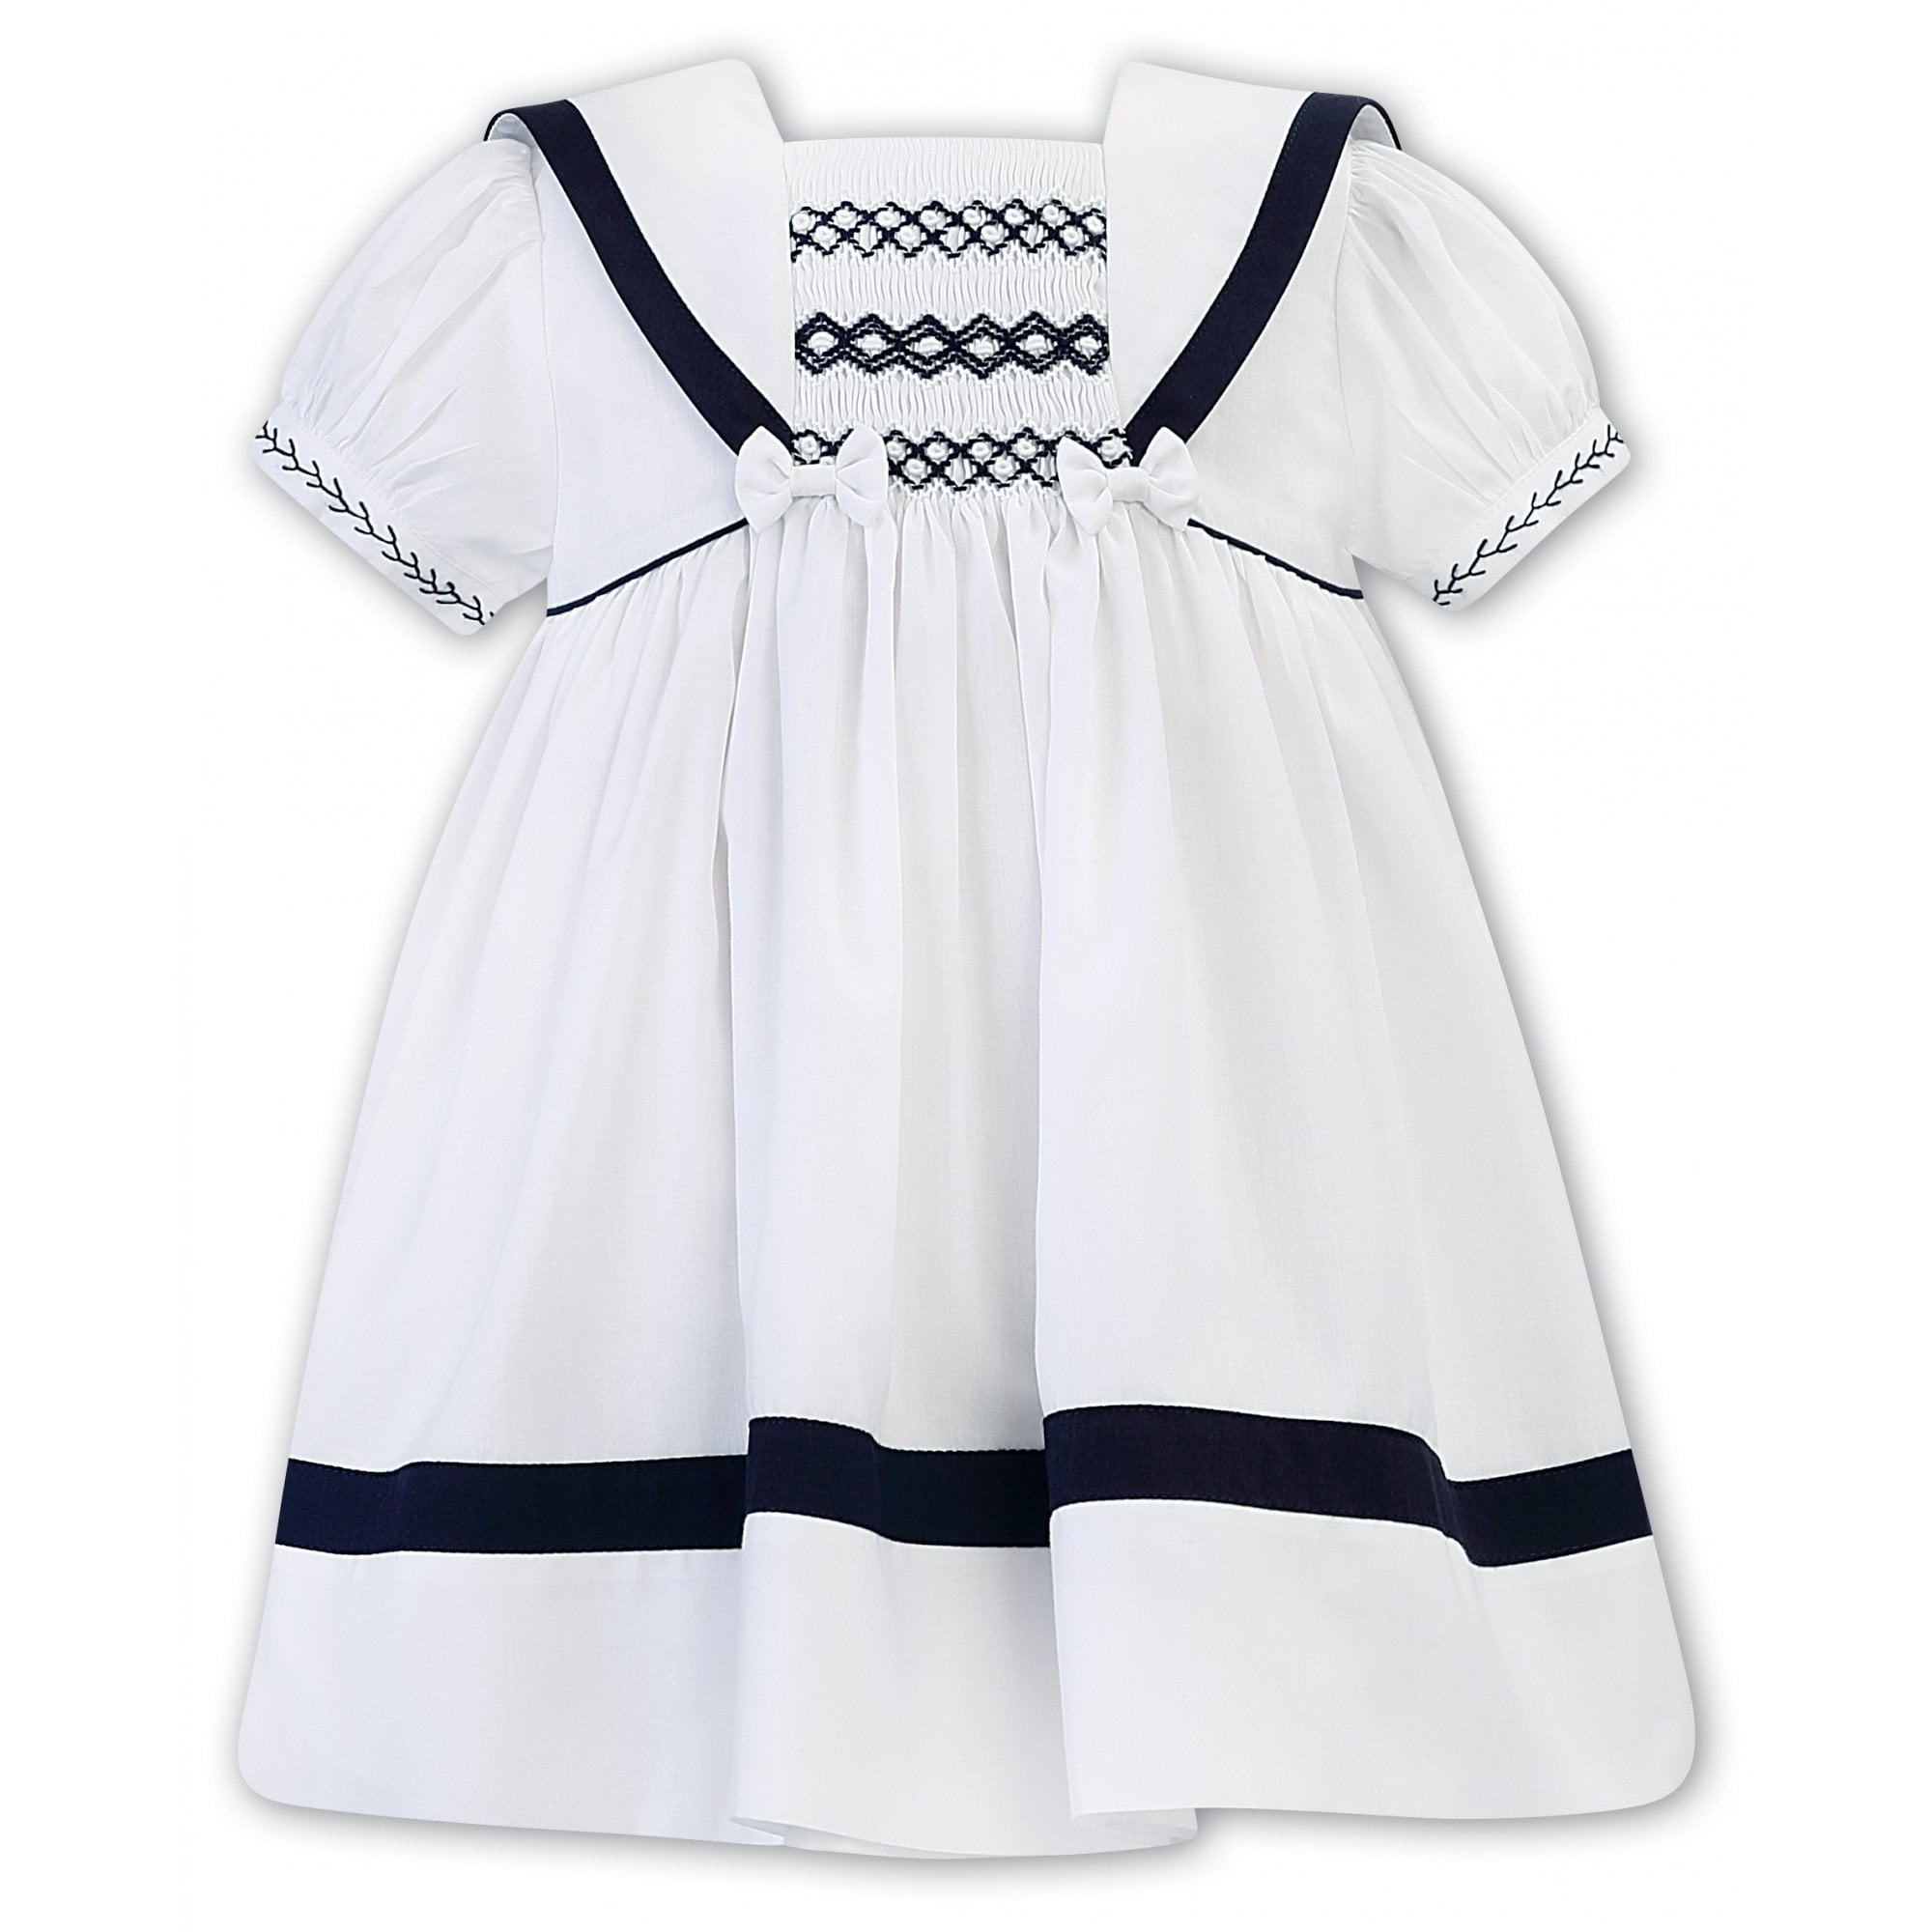 Sarah Louise -a- Sailor Dress Navy/White 012280